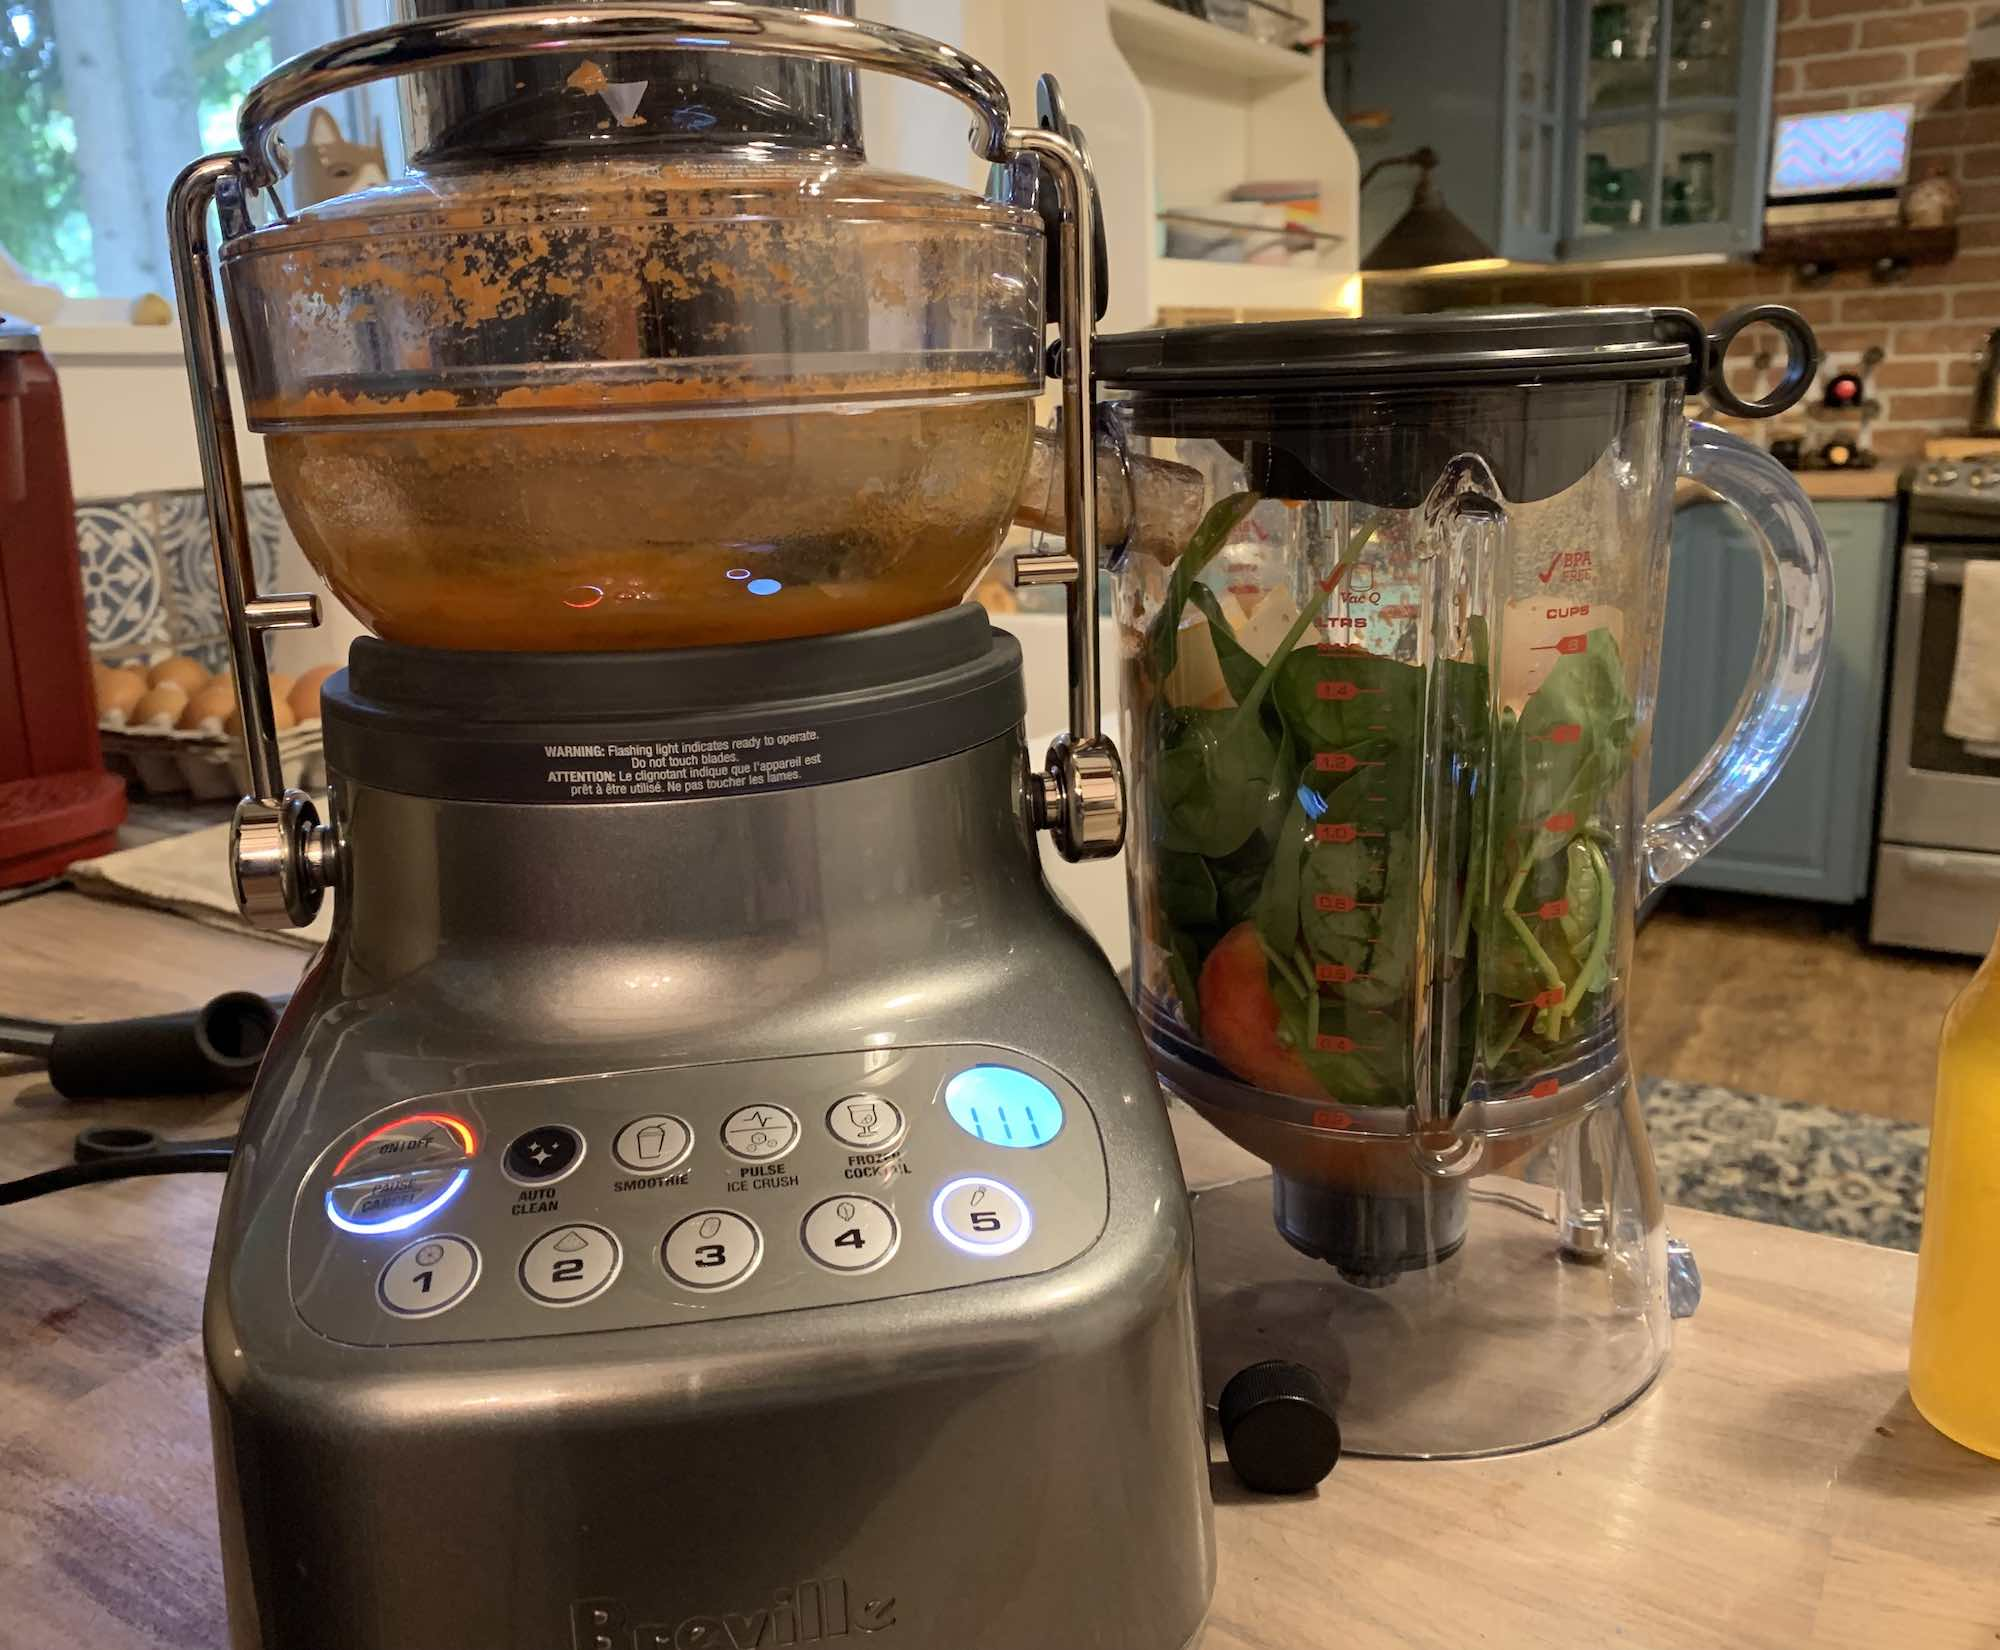 As a multifunction appliance, Bluicers combine juicing and blending.